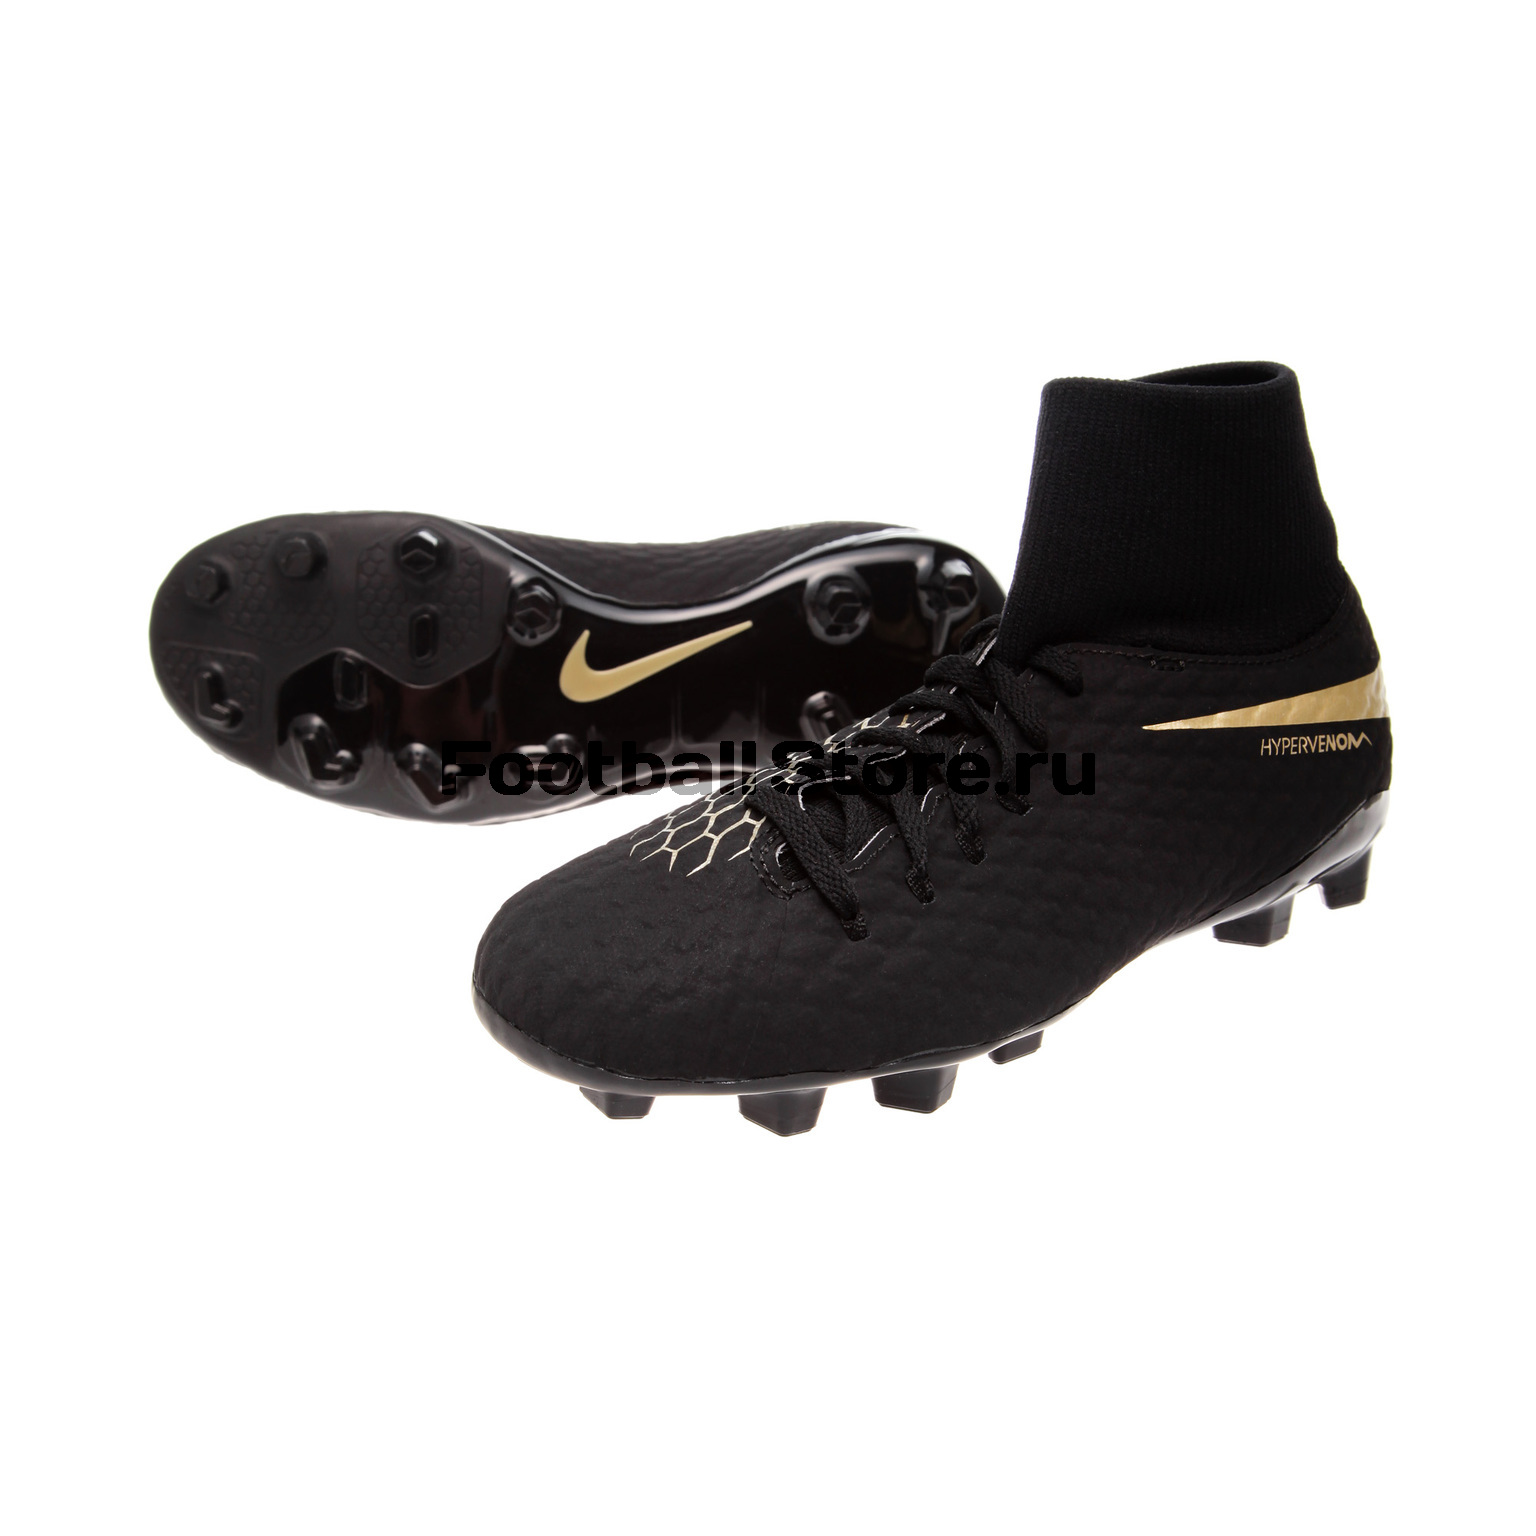 Бутсы Nike Hypervenom 3 Academy DF JR FG AH7287-090 бутсы nike superfly academy gs cr7 jr fg mg aj3111 390